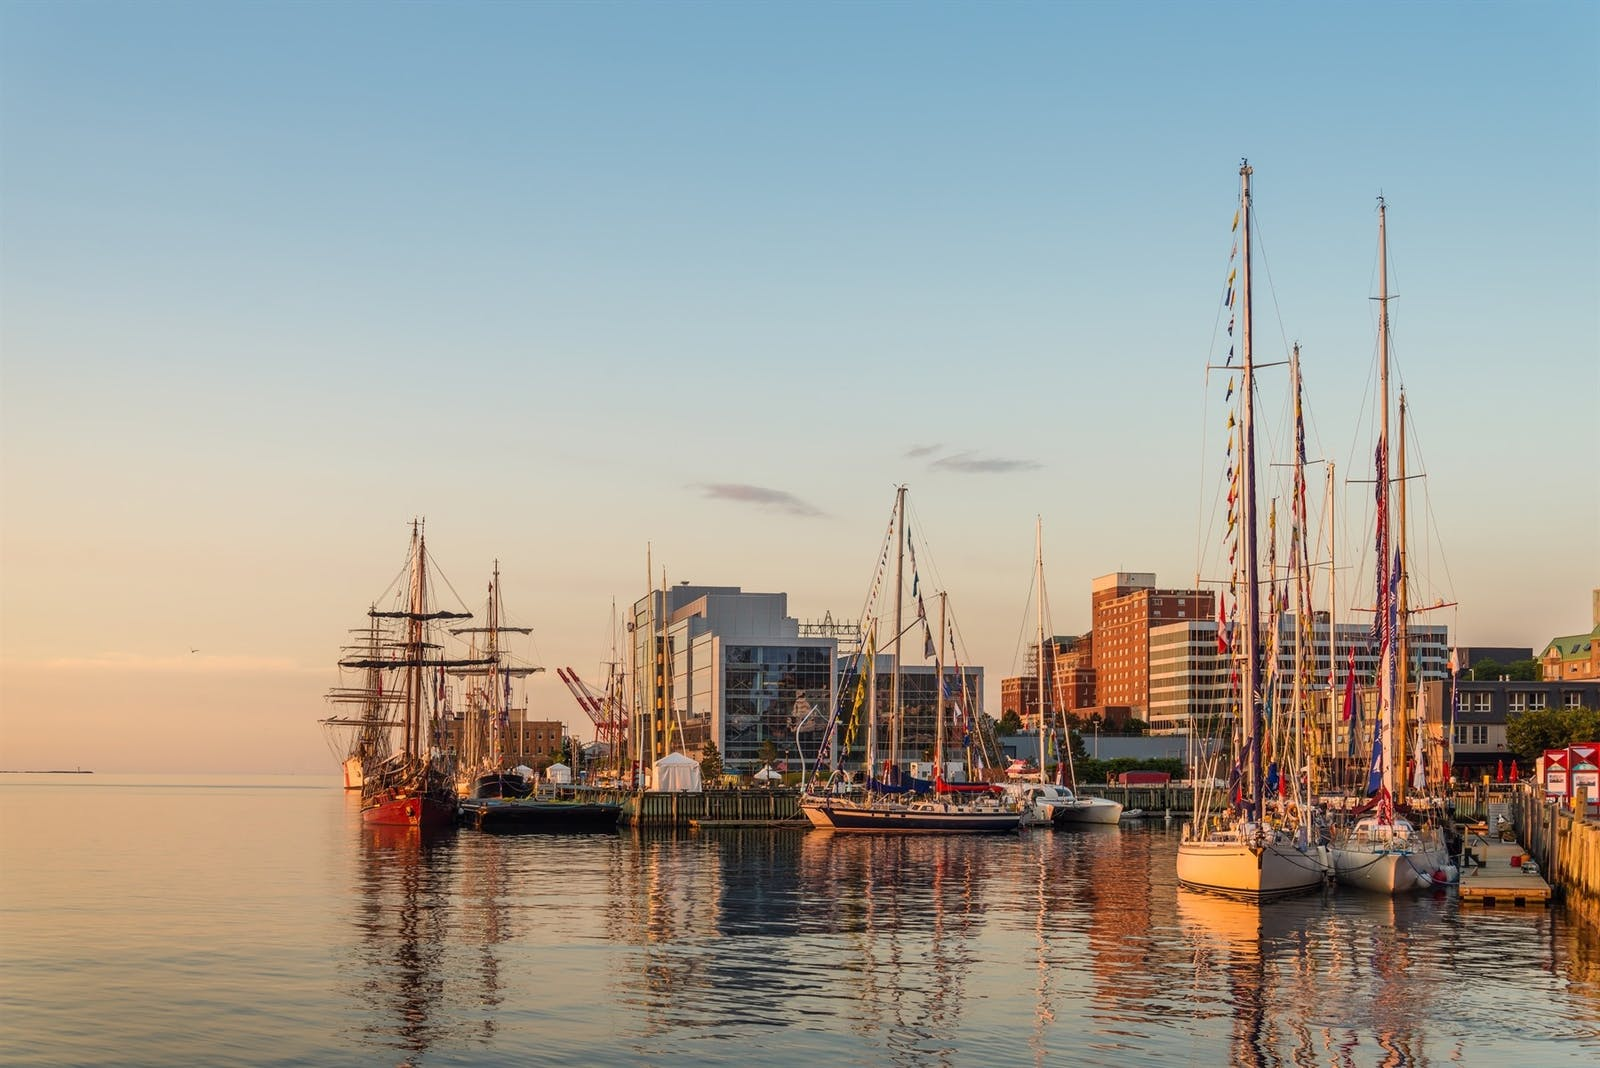 halifax in the early morning during the nova scotia tall ship festival